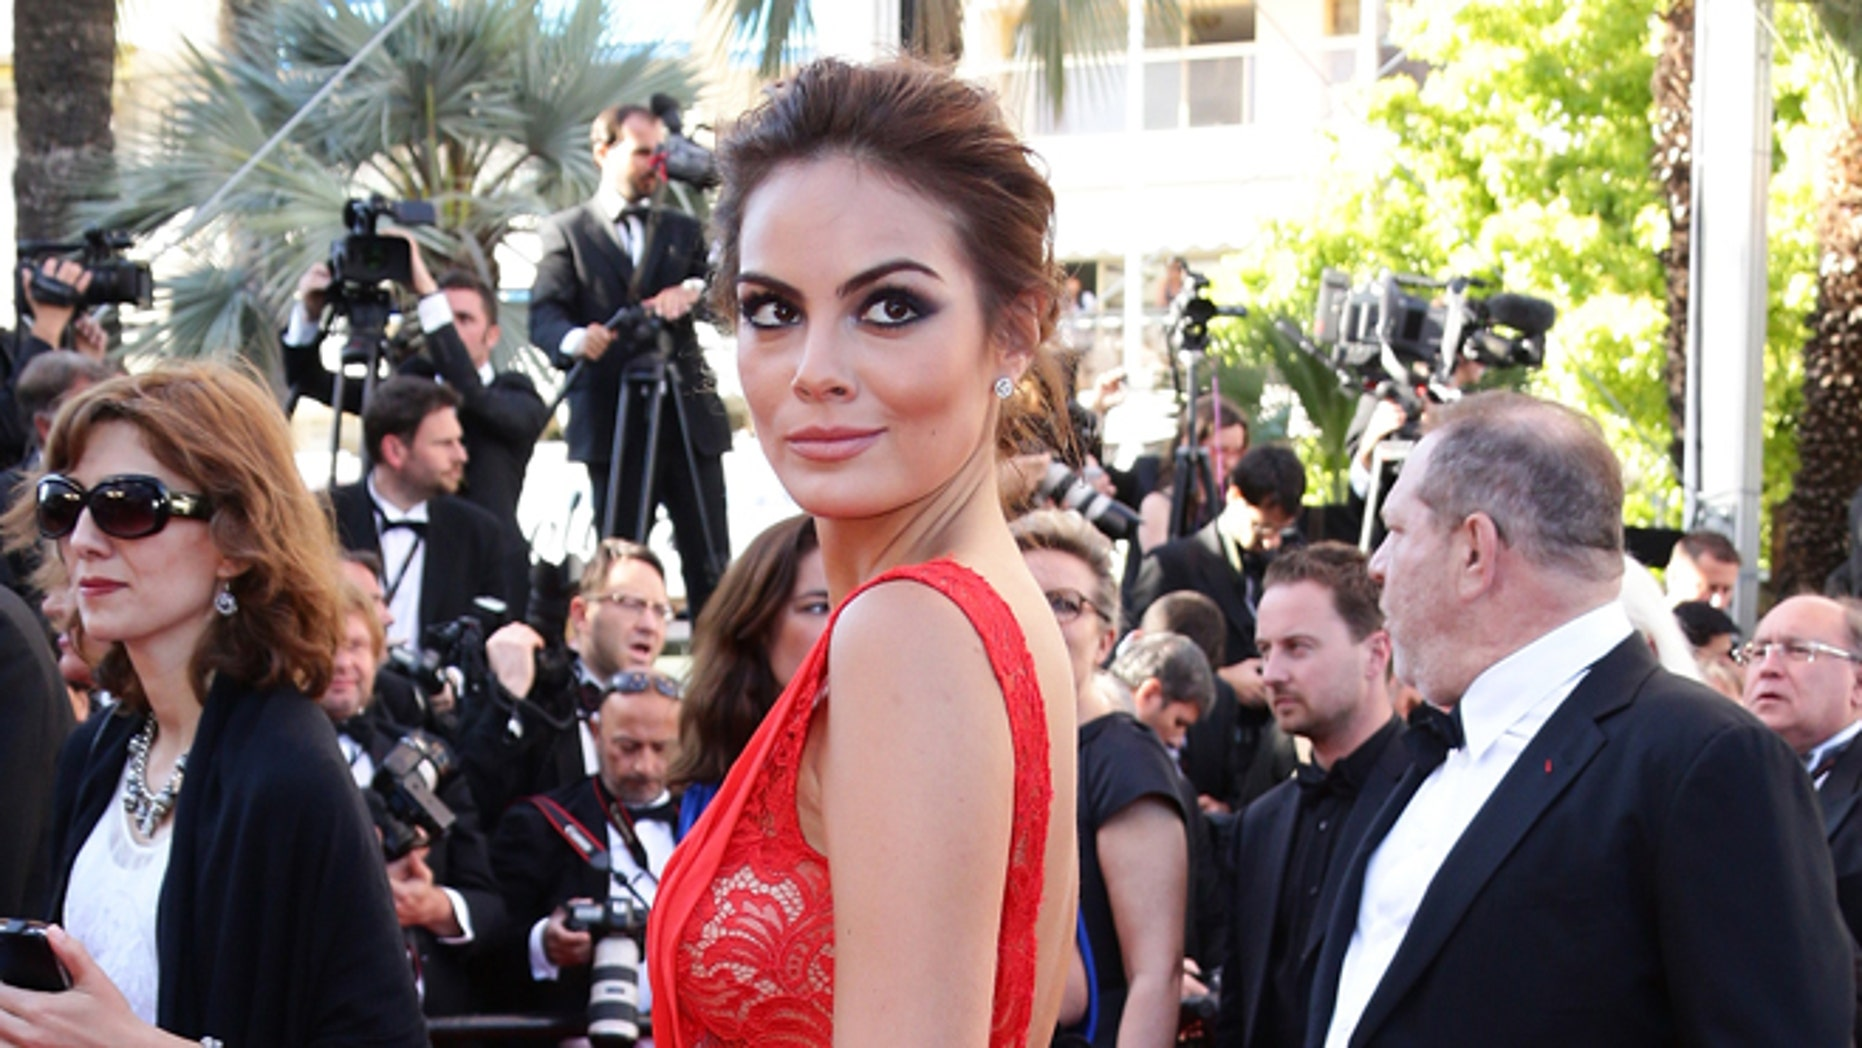 CANNES, FRANCE - MAY 26:  Ximena Navarrete  attends the 'Zulu' Premiere and Closing Ceremony during the 66th Annual Cannes Film Festival at the Palais des Festivals on May 26, 2013 in Cannes, France.  (Photo by Vittorio Zunino Celotto/Getty Images)